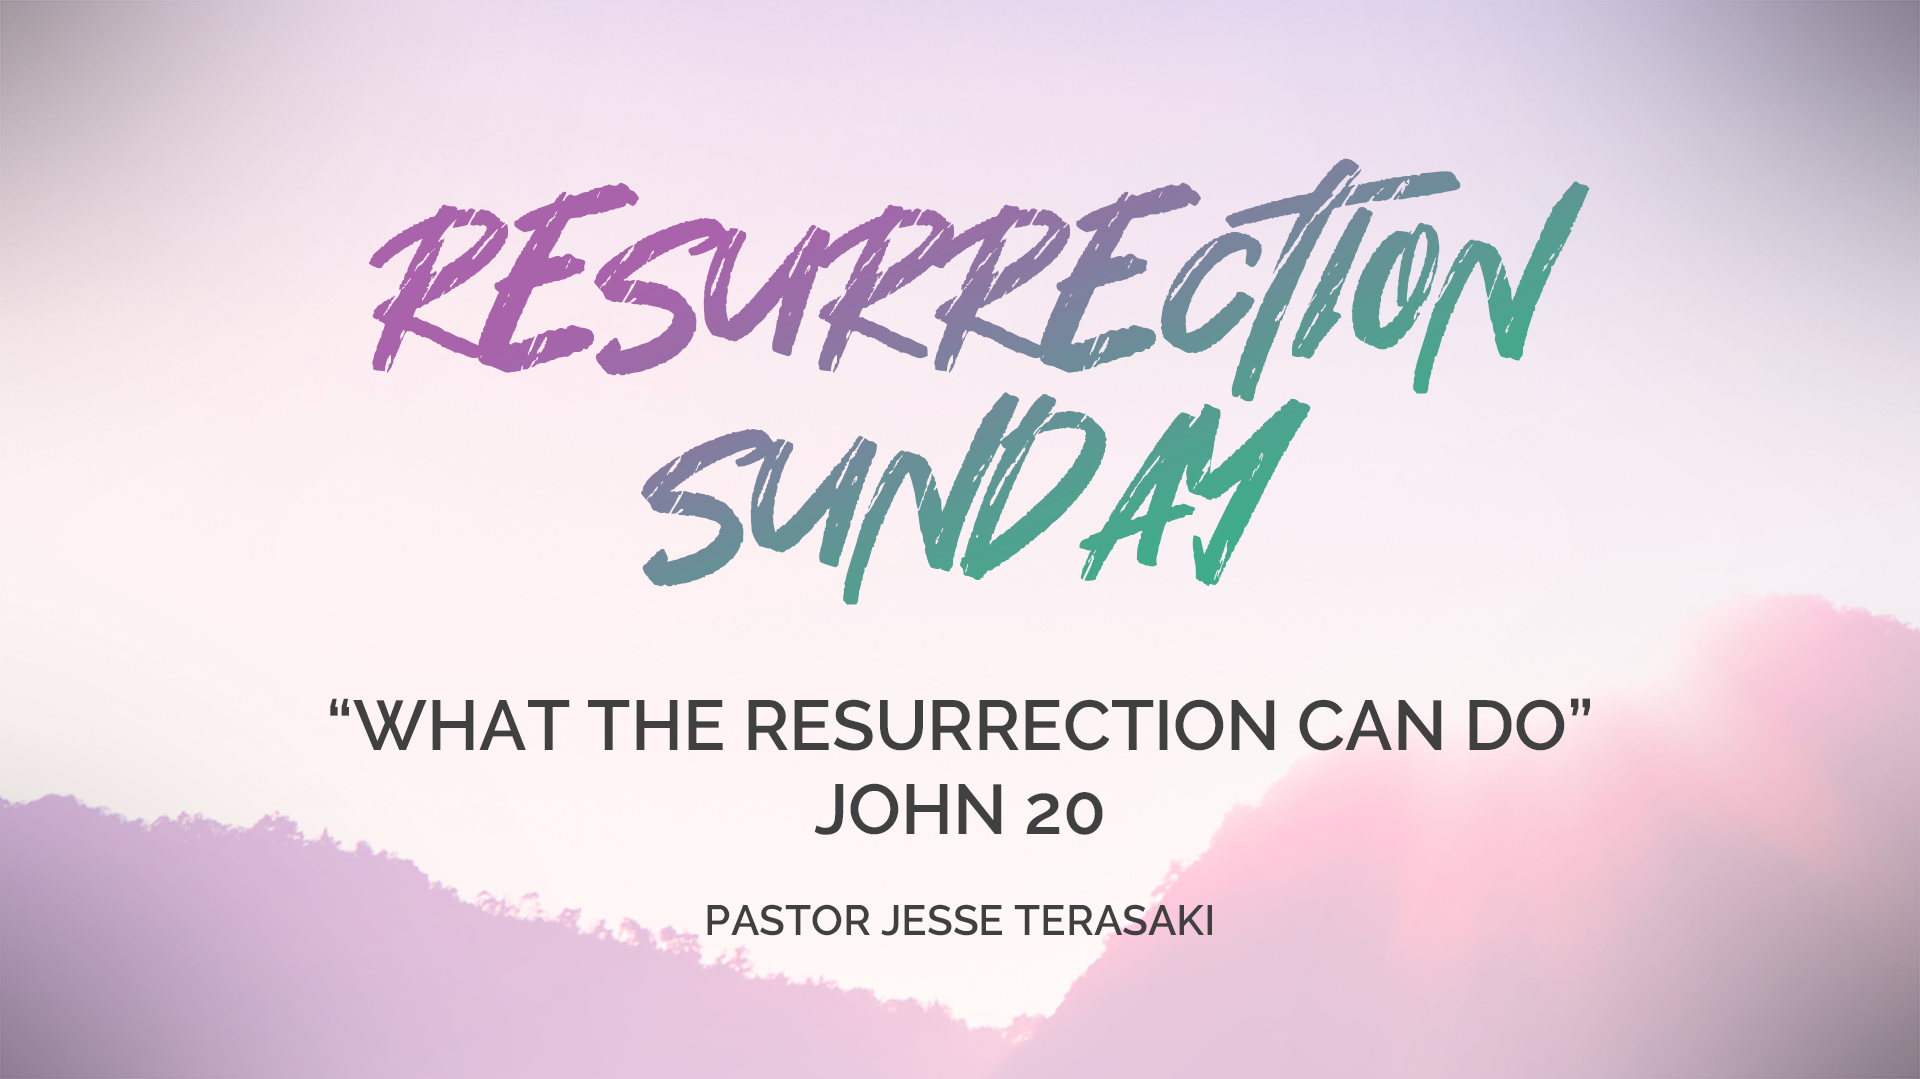 What The Resurrection Can Do